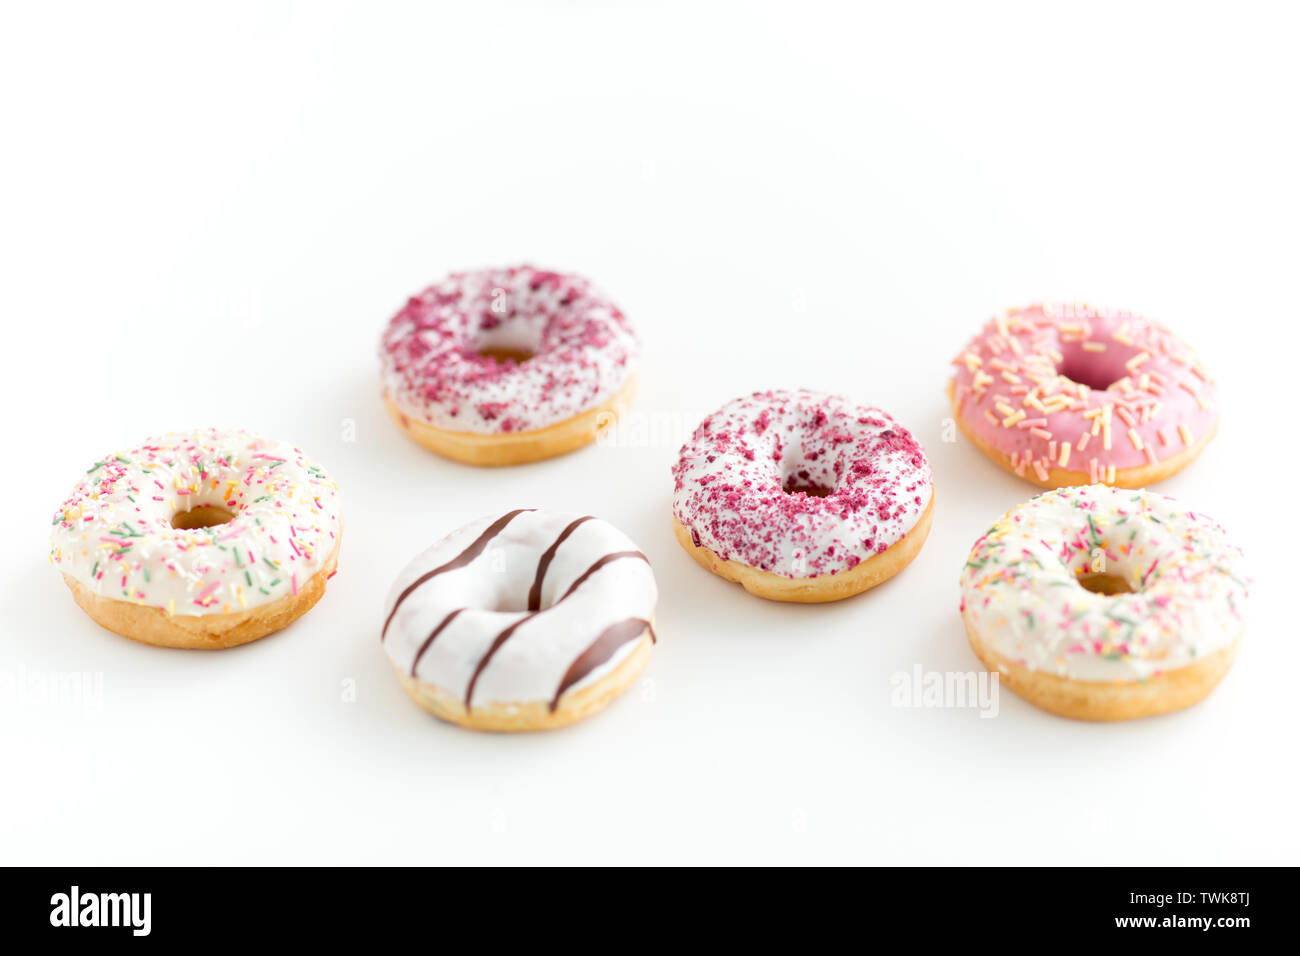 close up of glazed donuts on white table - Stock Image